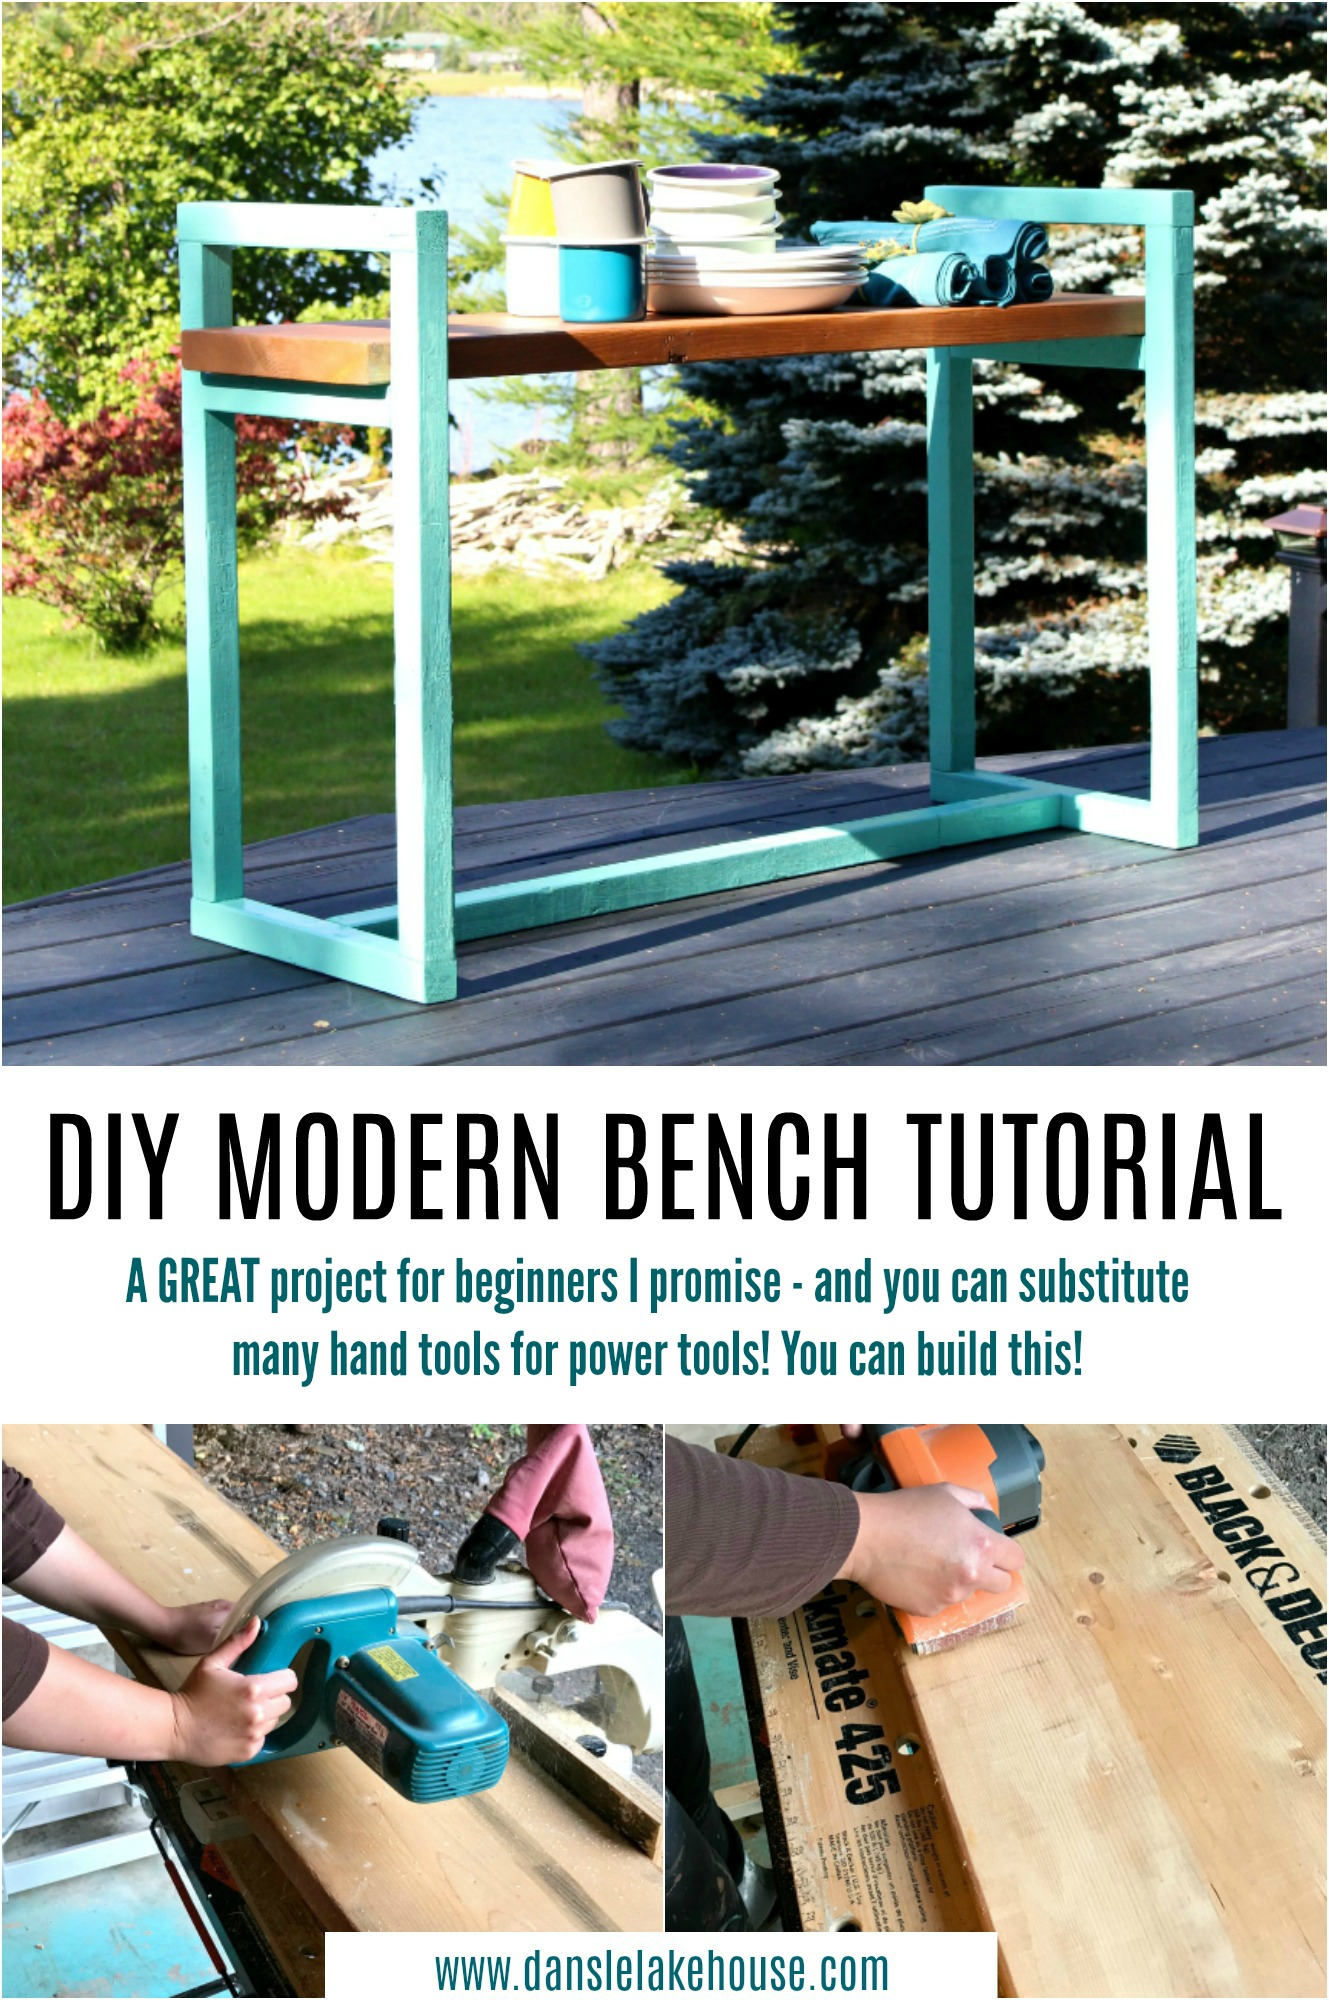 Easy DIY Modern Bench Tutorial